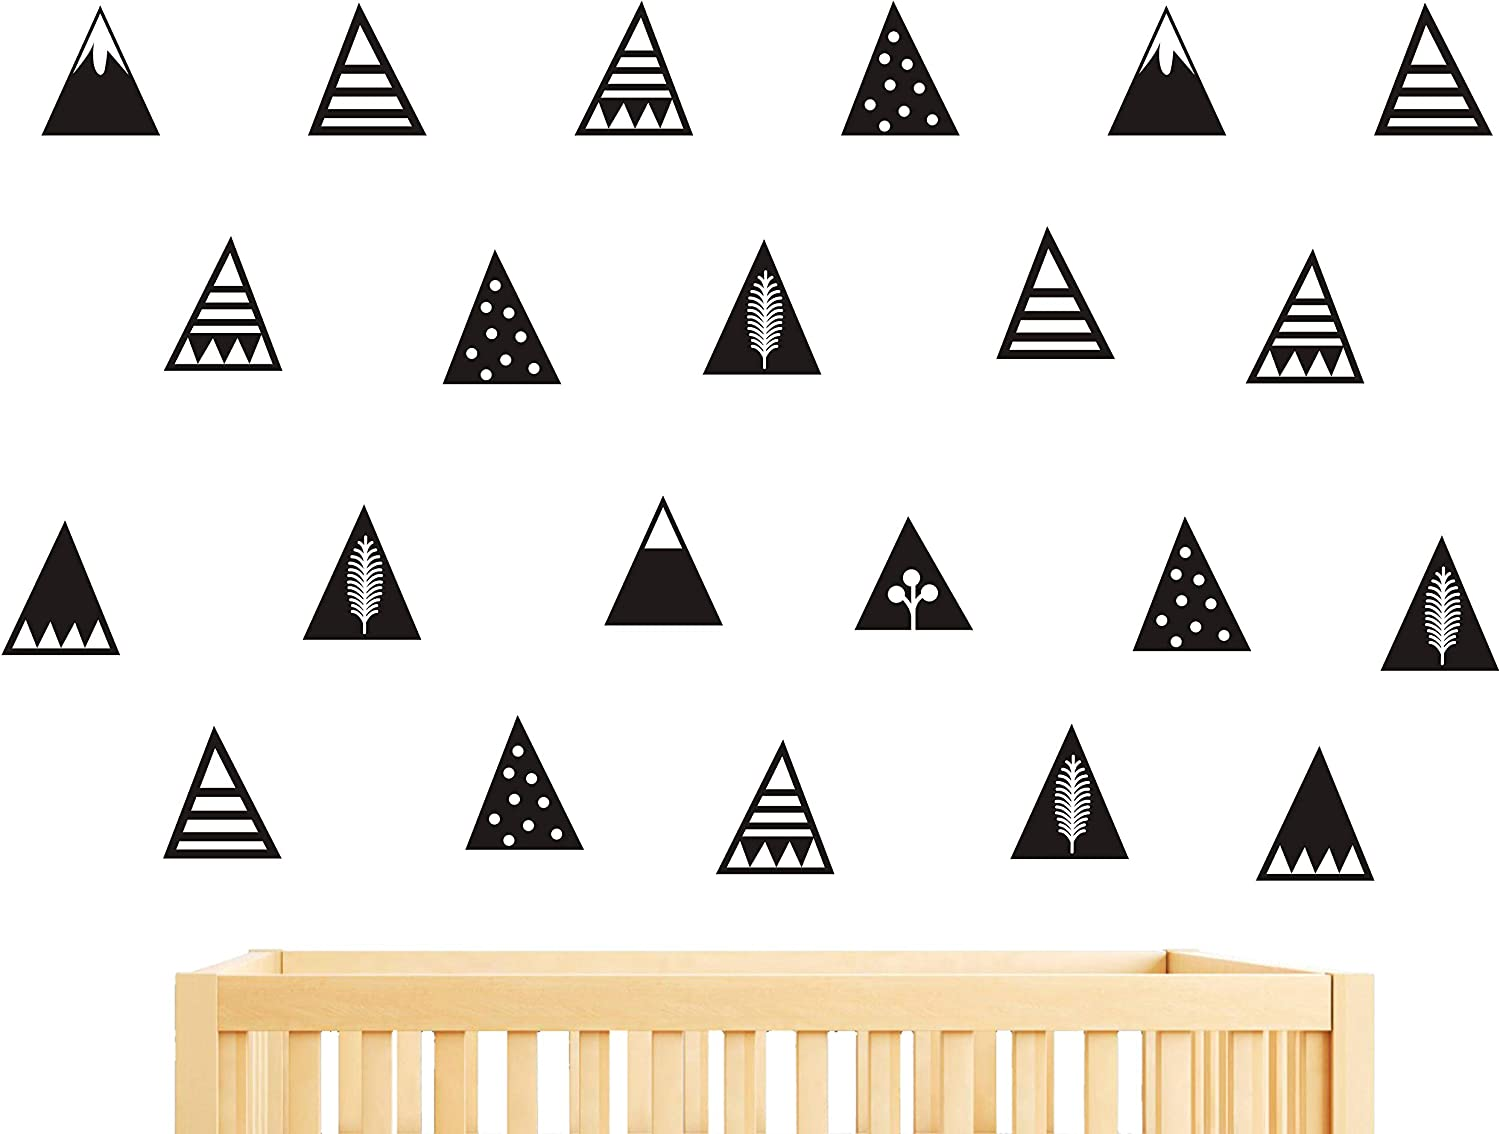 Mountain Wall Decals,8 Different Pattern,Removable Vinyl Wall Stickers for Baby Kids Boy Girl Bedroom Nursery Decor A16 (Black)